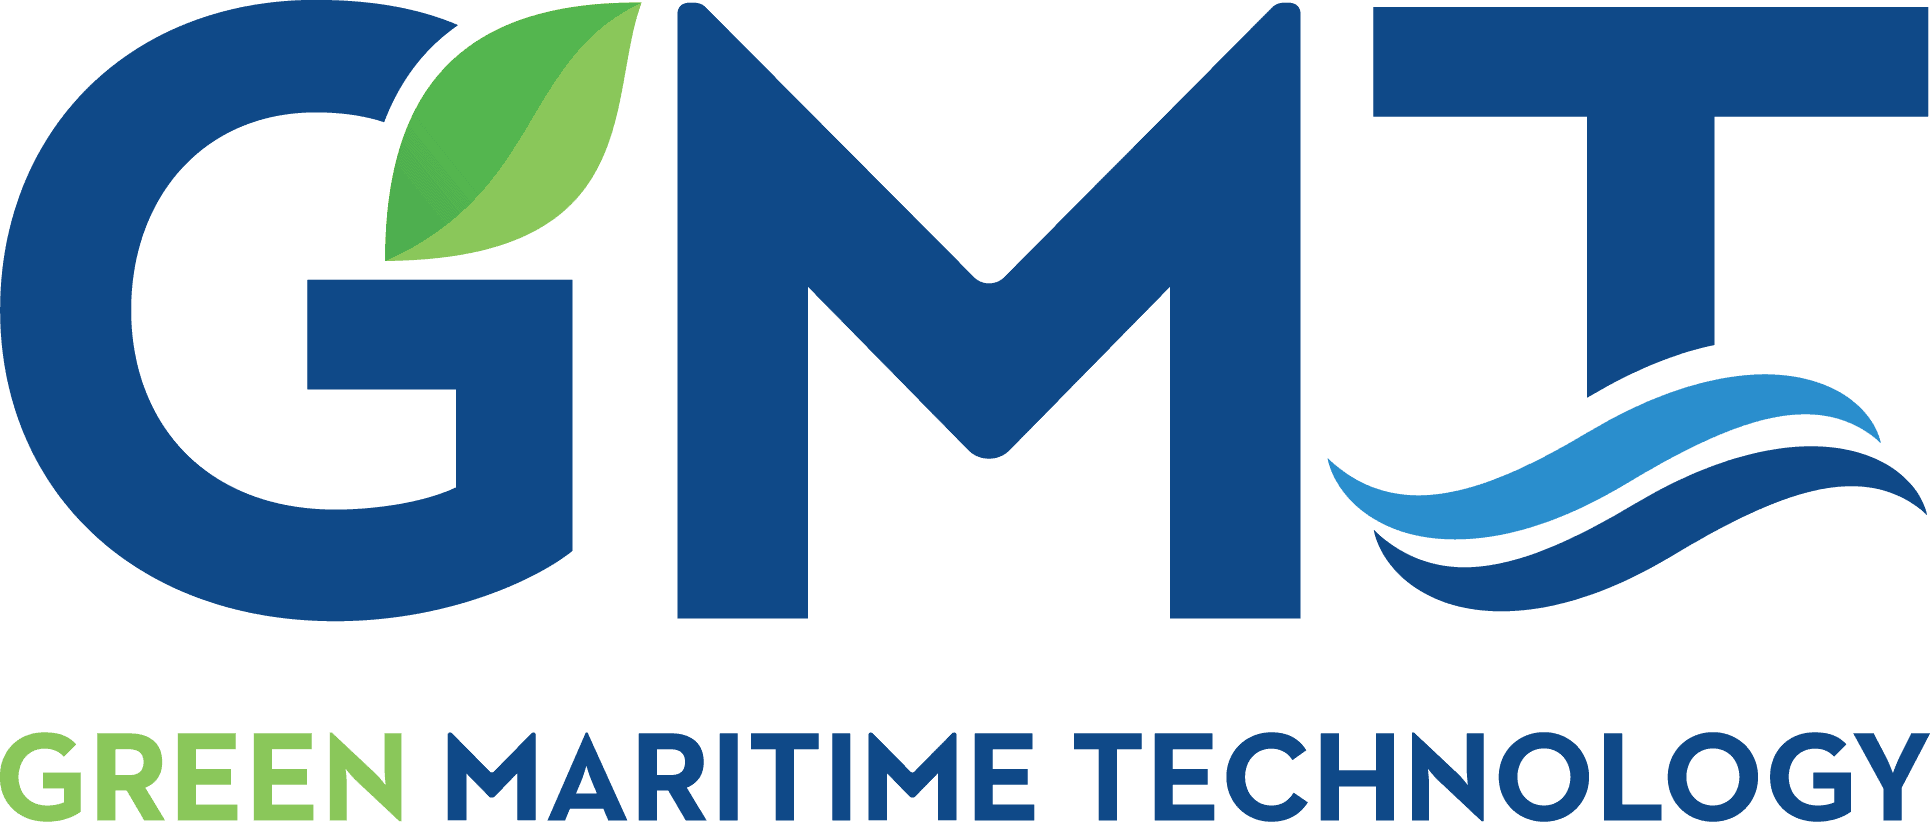 Green Maritime Technology - GMT